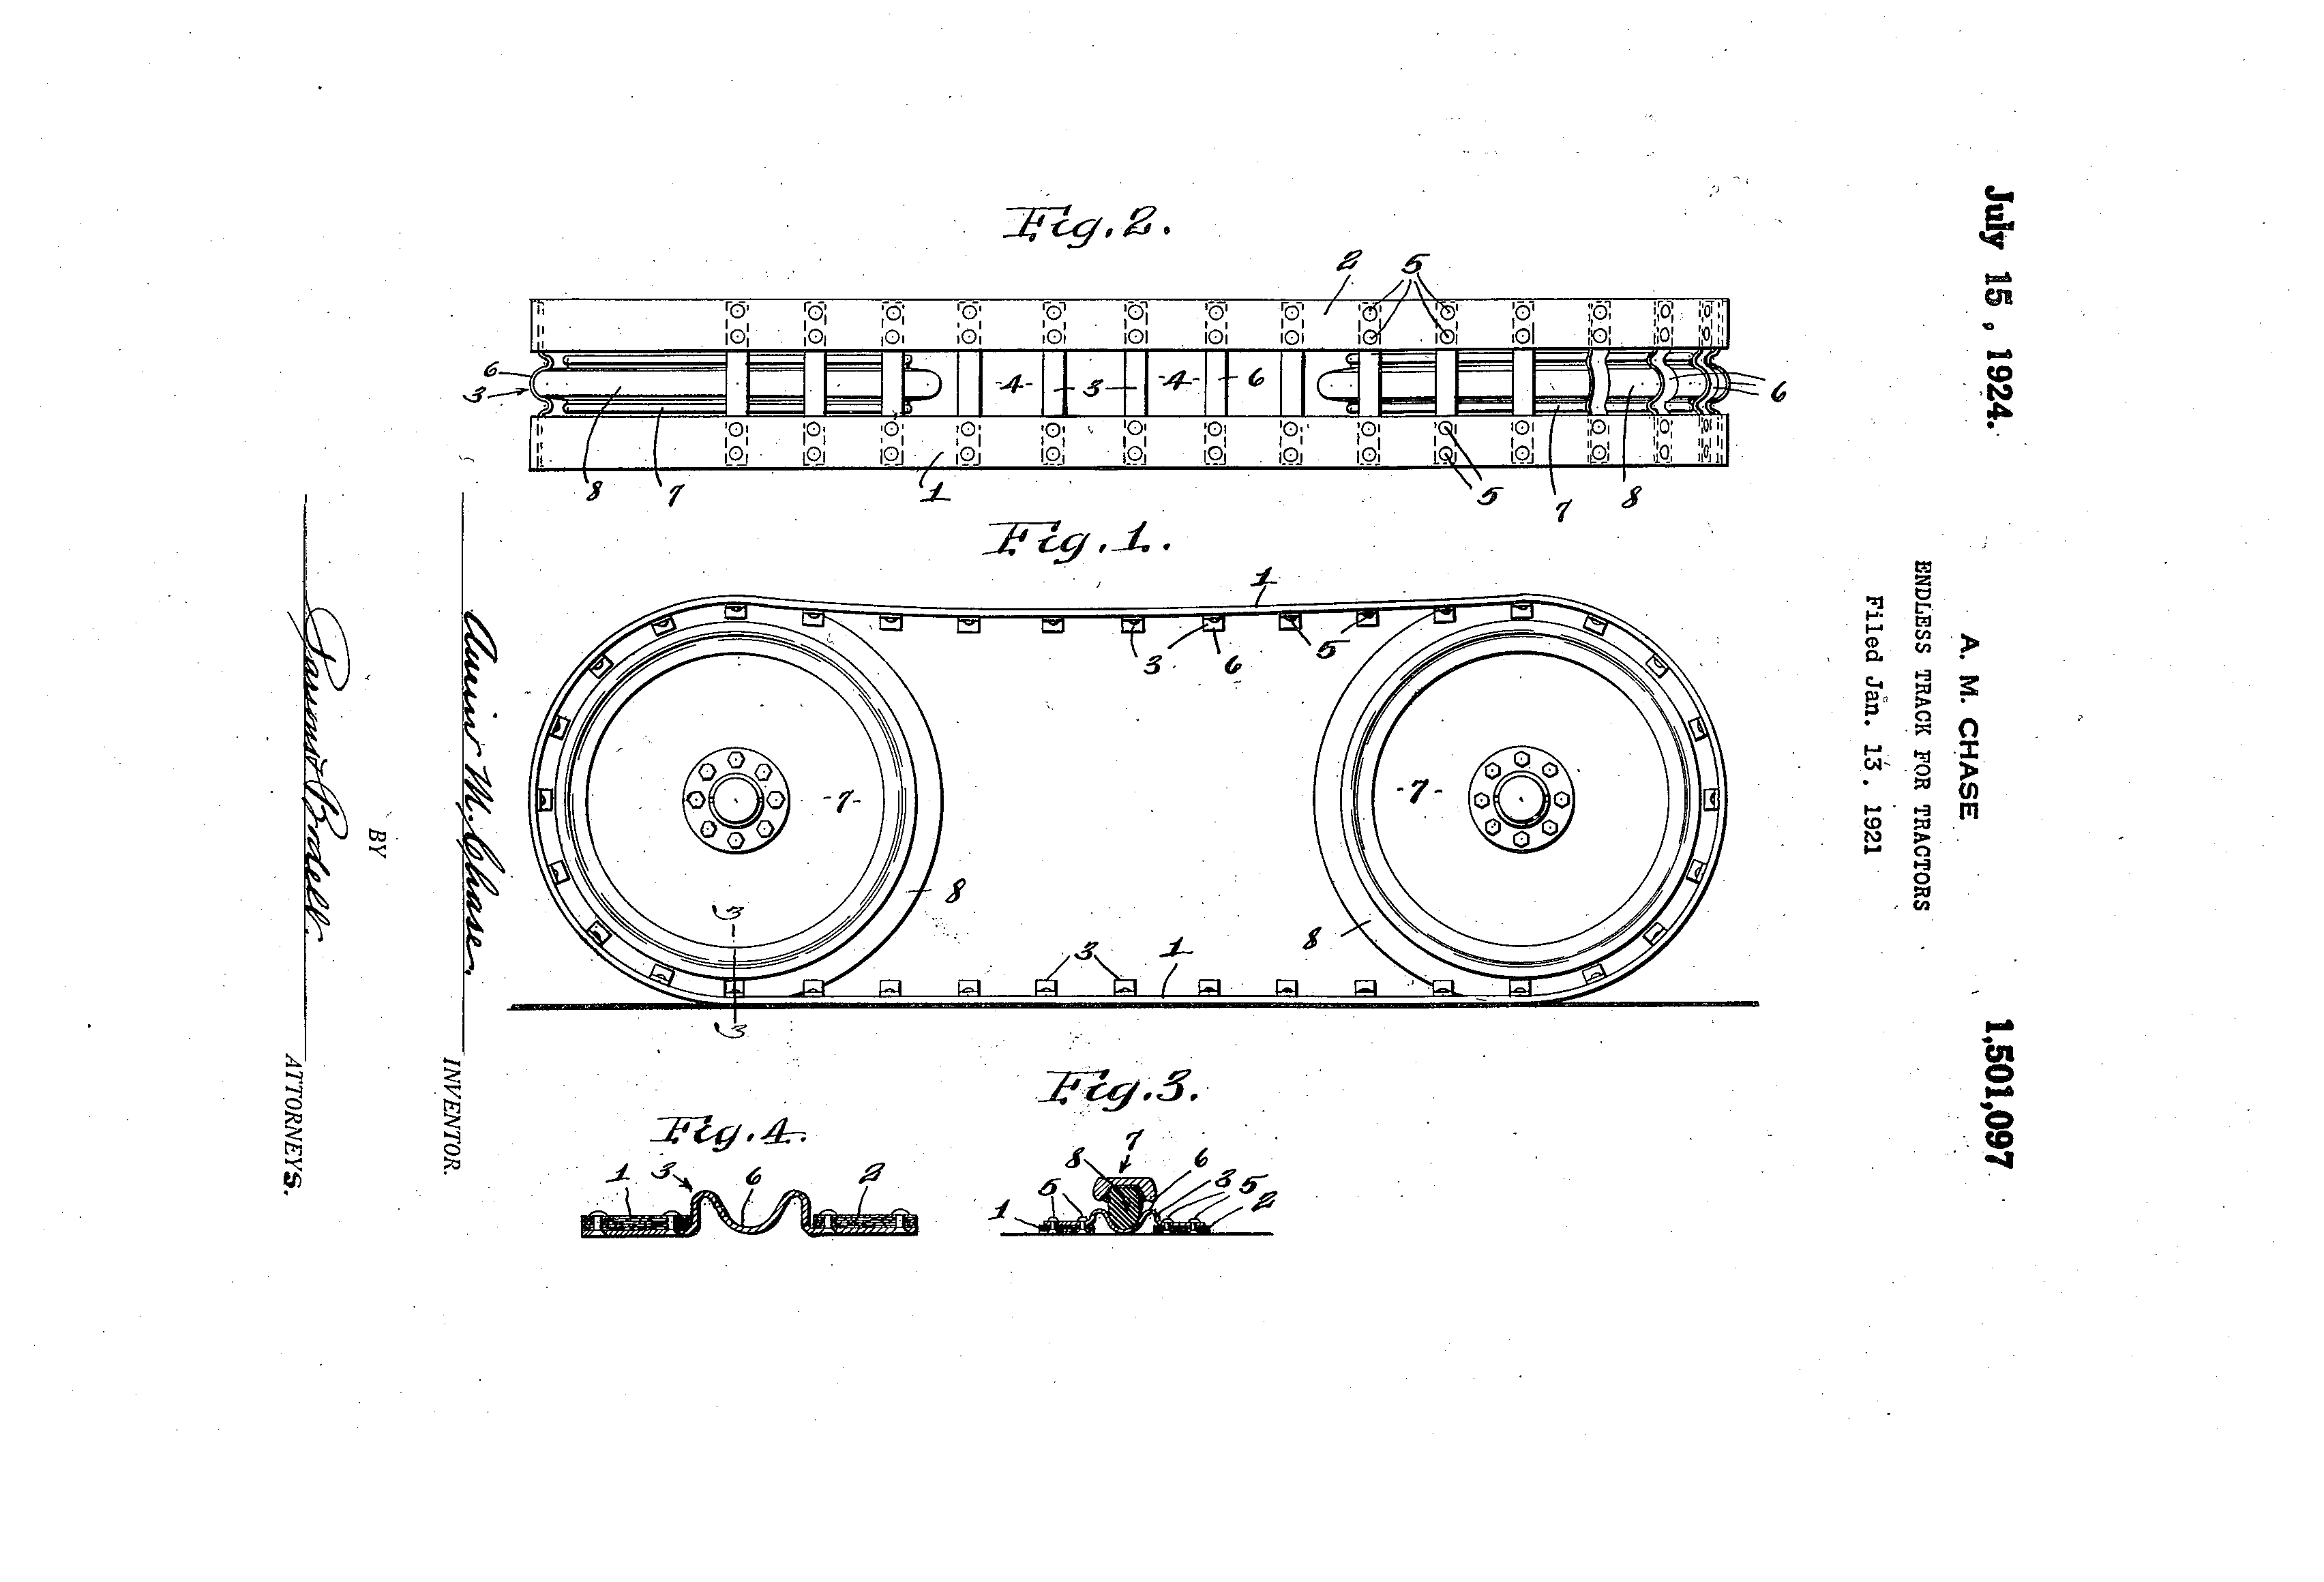 Endless Belt Patent 1